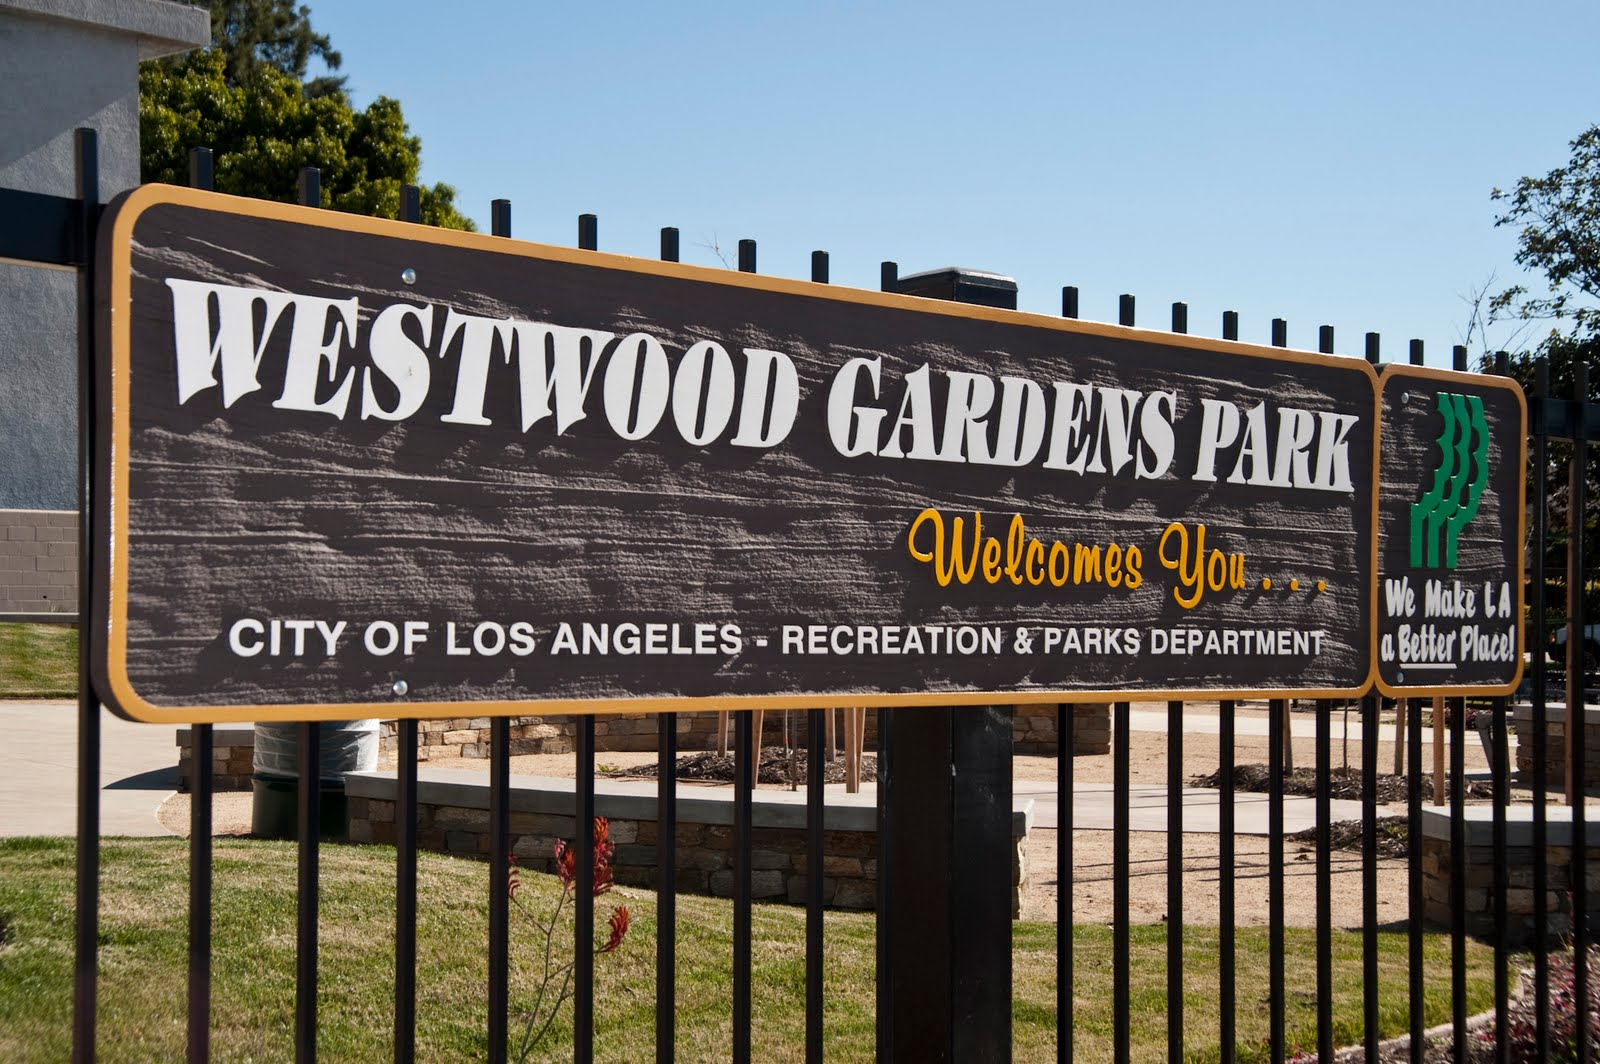 La parks news and information february 2011 for Westwood park